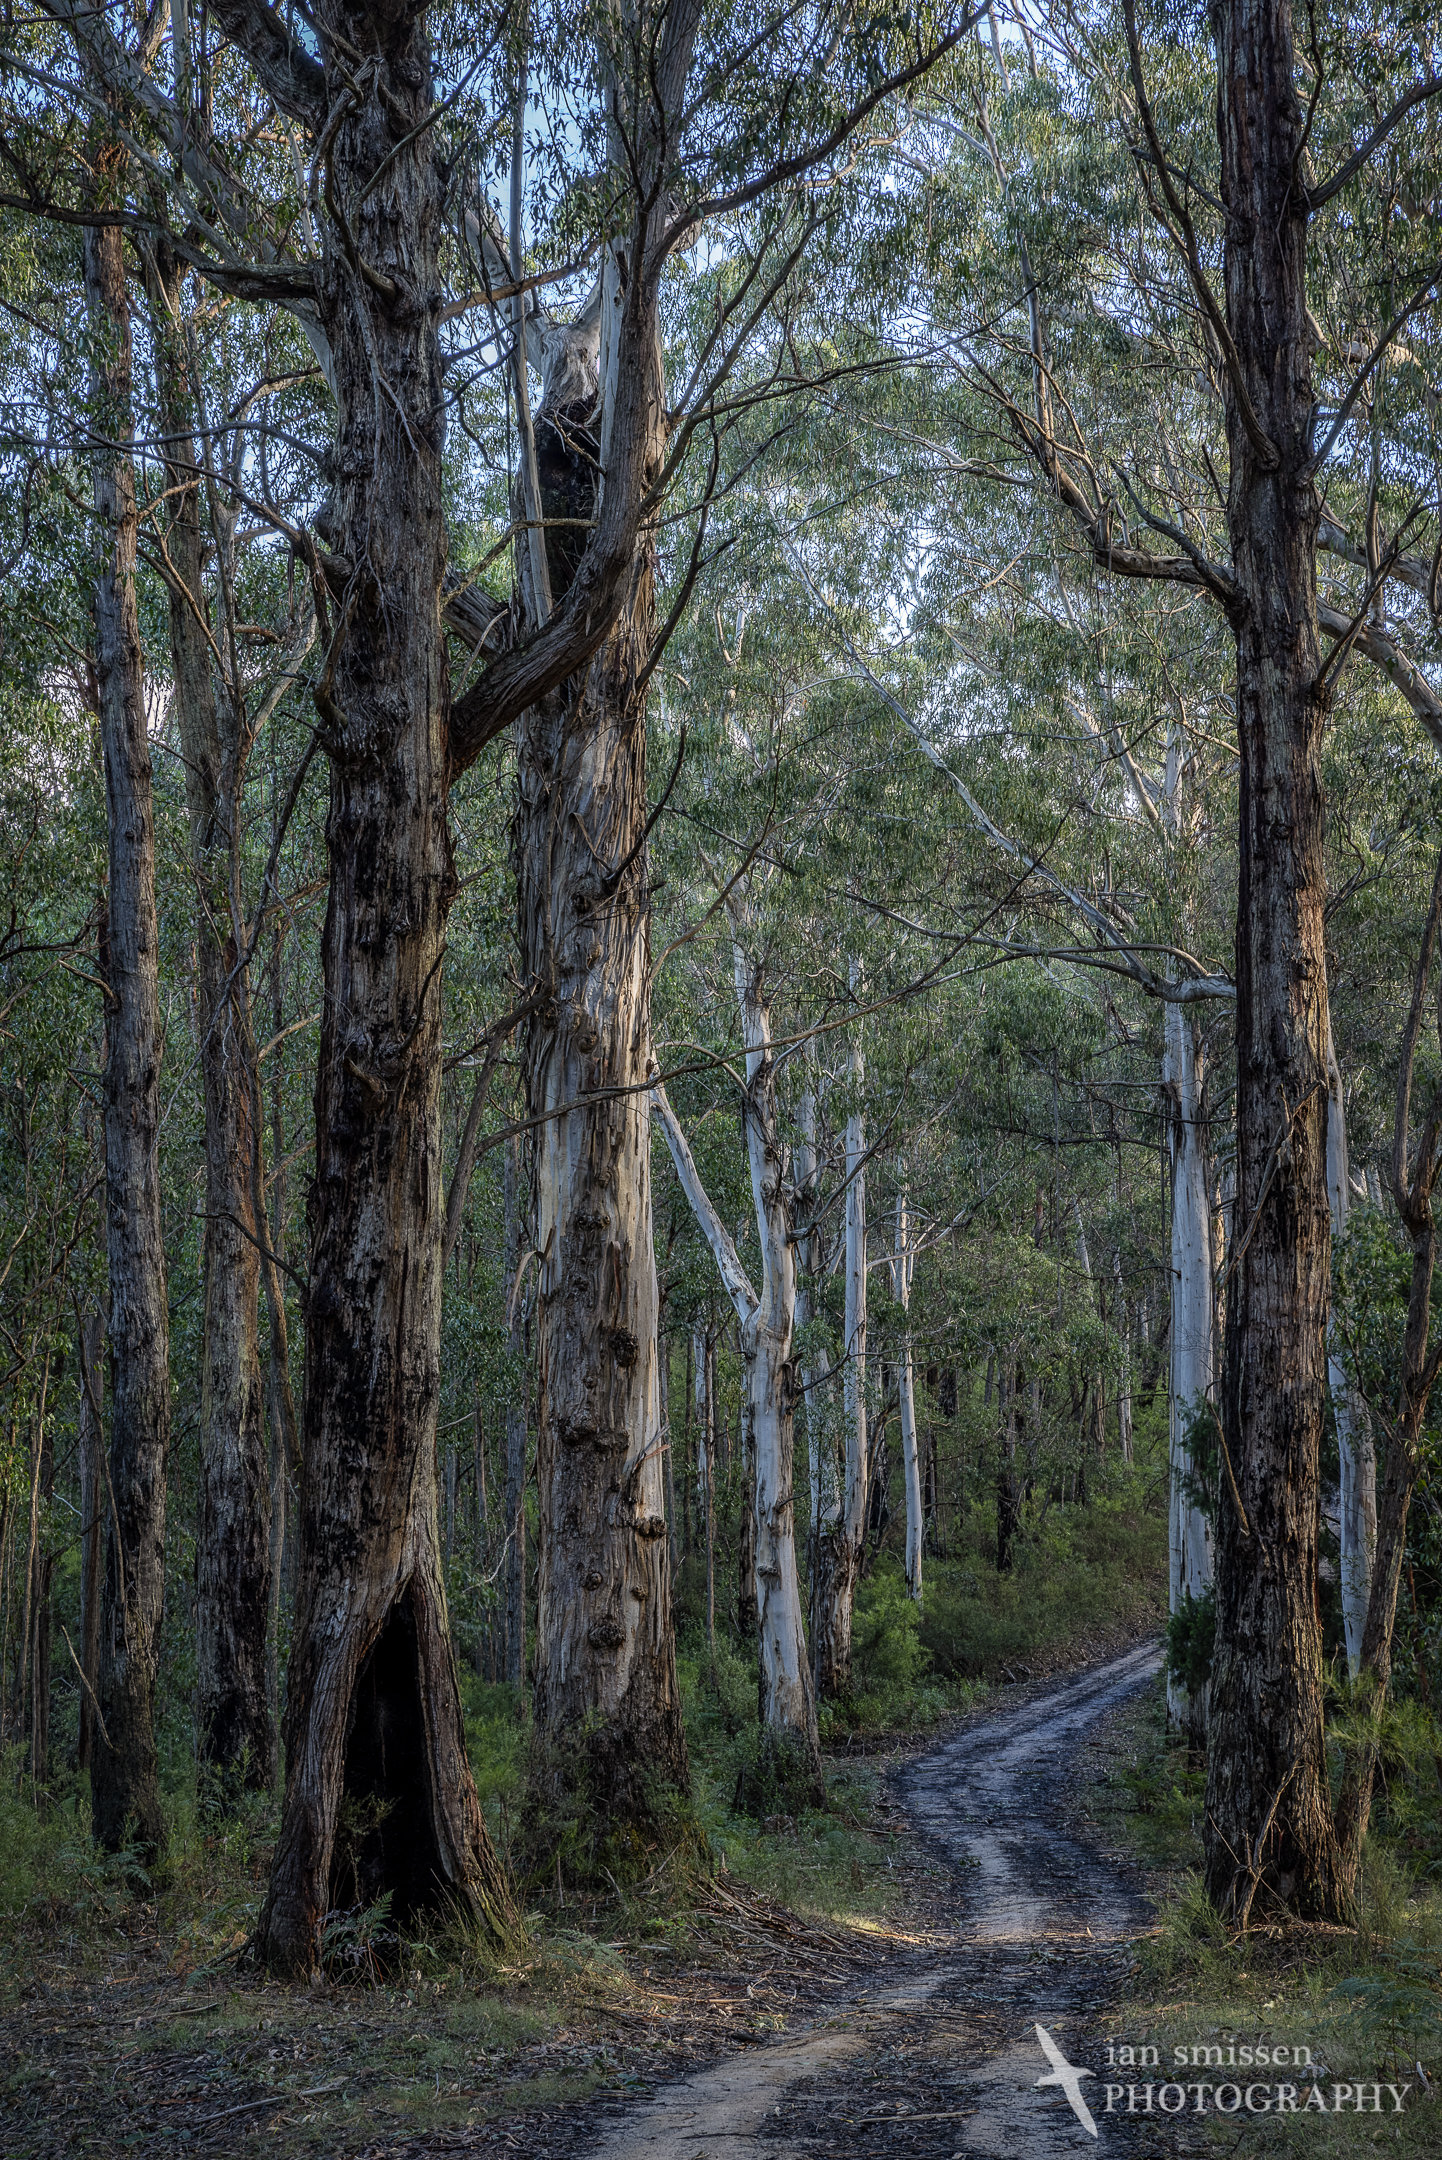 Big Hill Track, Great Otway National Park, Victoria, Australia 60mm, ISO 100, 5-shot HDR: 1/5 to 3 seconds @ f/16